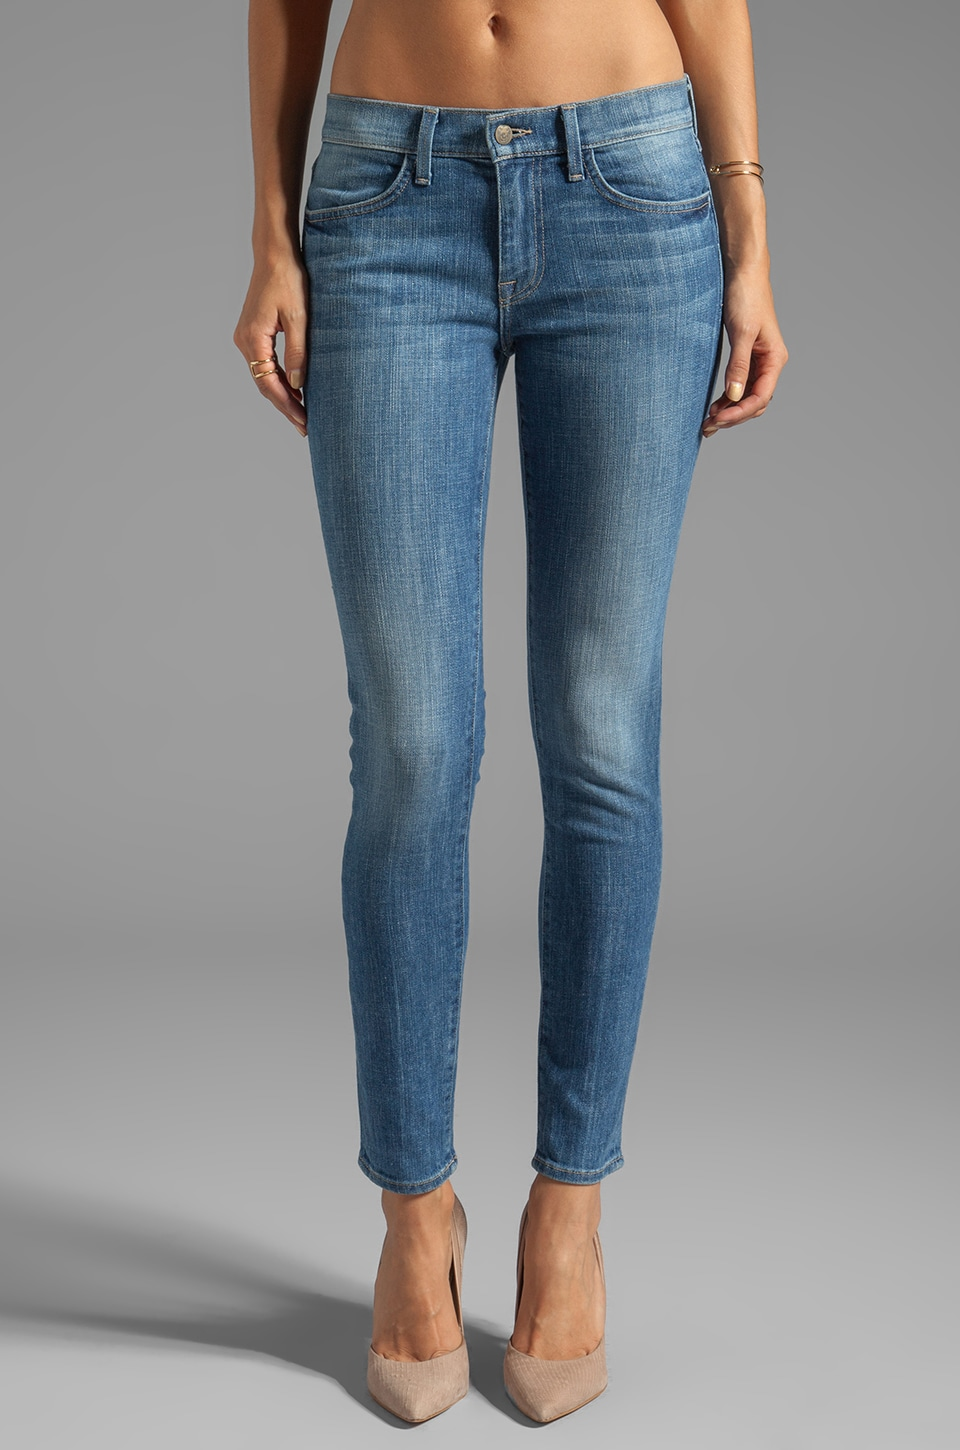 Wildfox Couture Marianne Mid-Rise Skinny in Spellbound